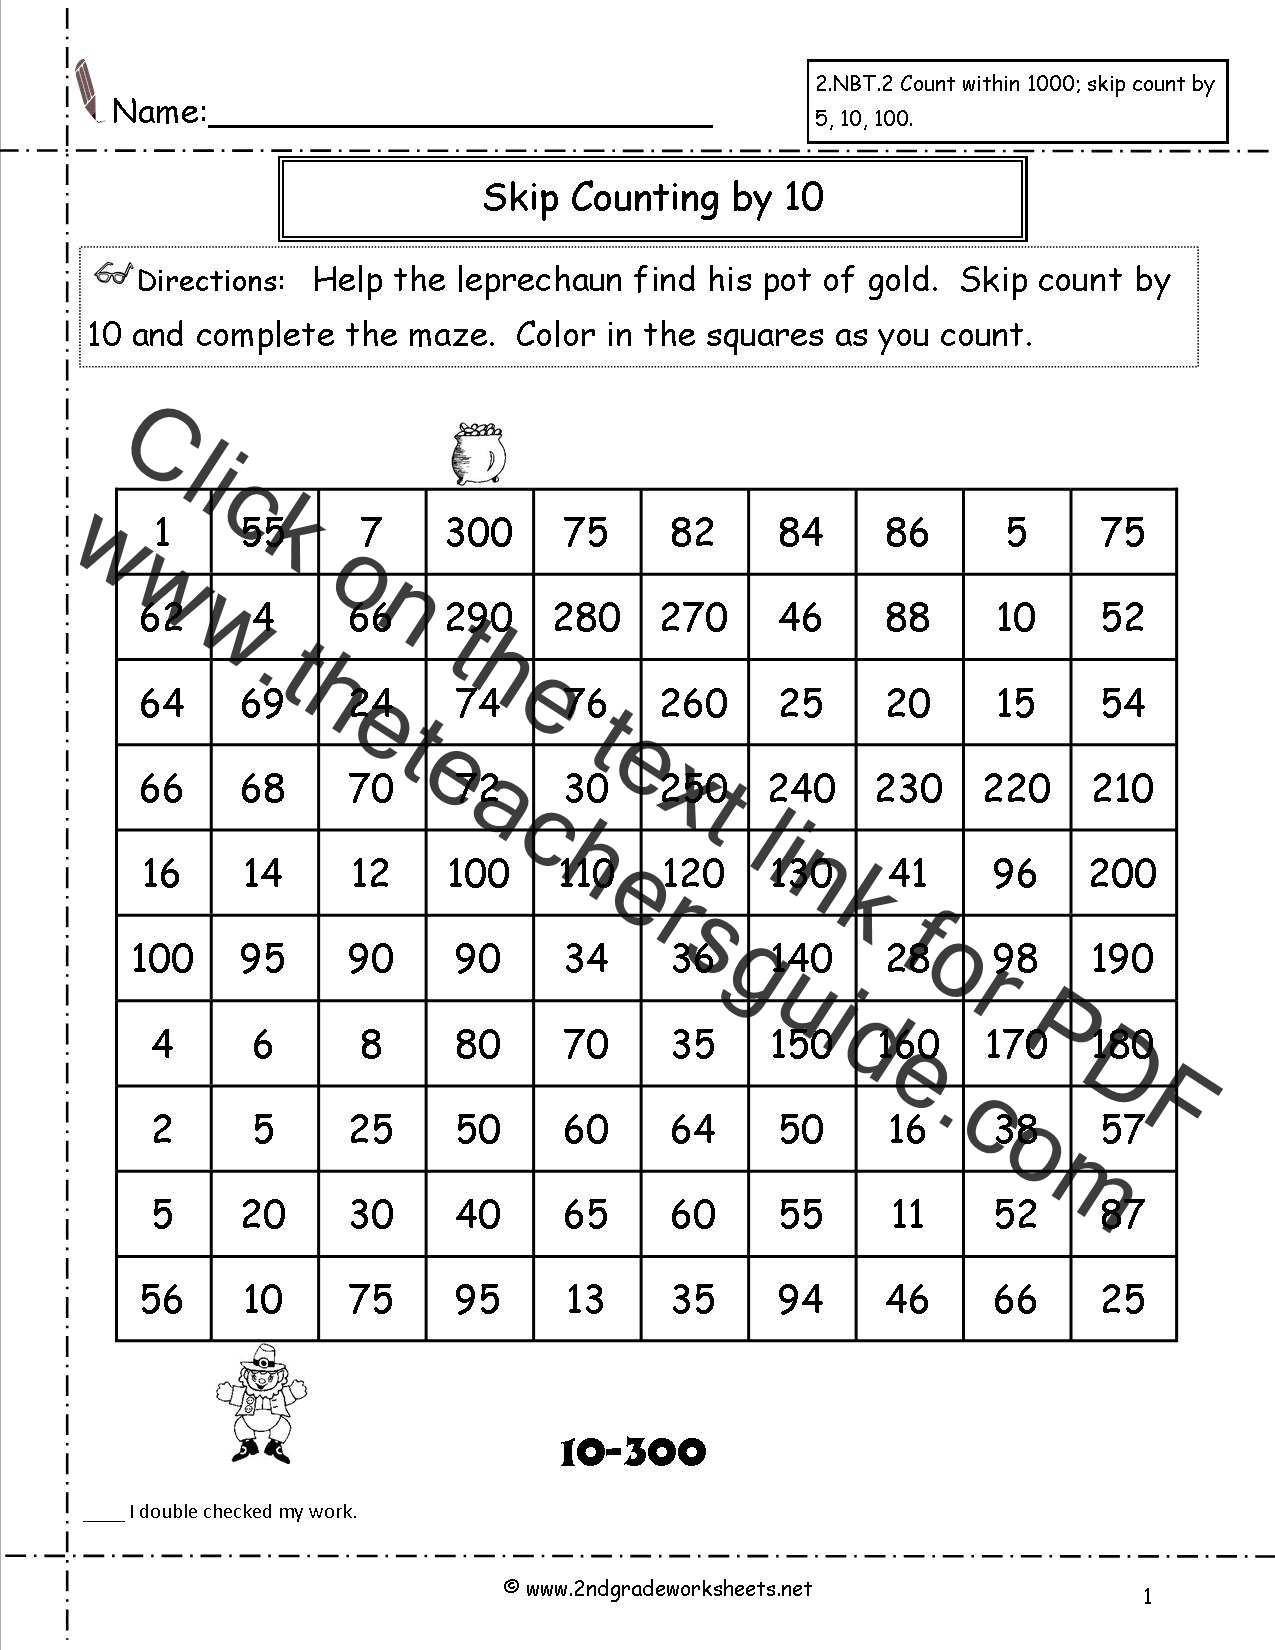 worksheet Skip Counting By 10 Worksheets free skip counting worksheets count by 10 maze